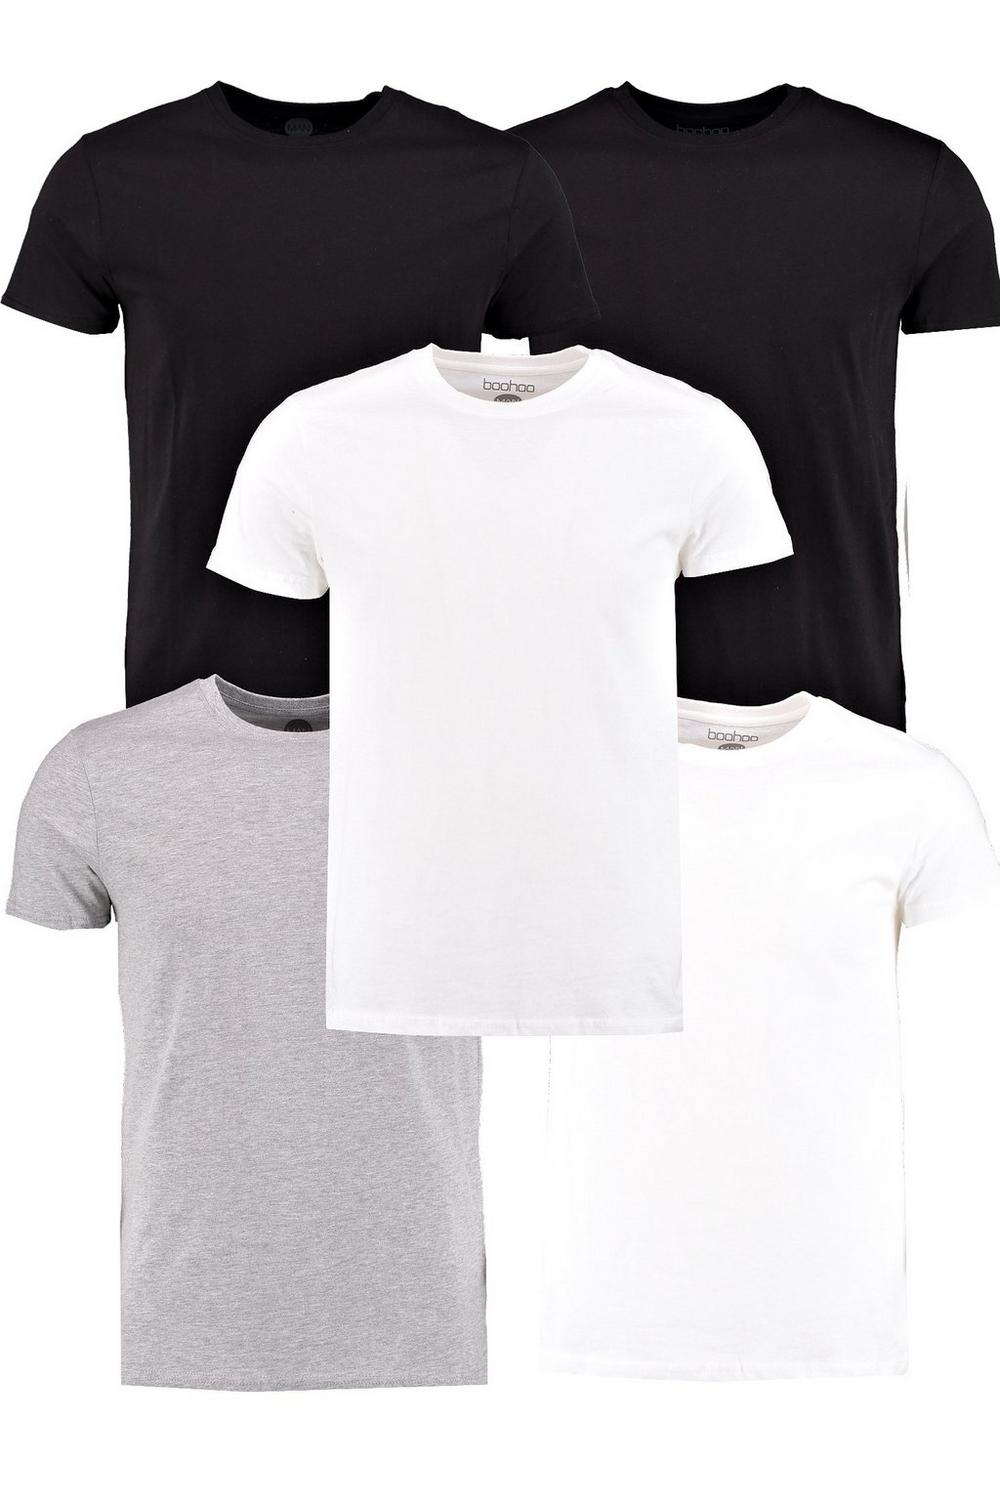 5 Pack Slim Fit TShirts